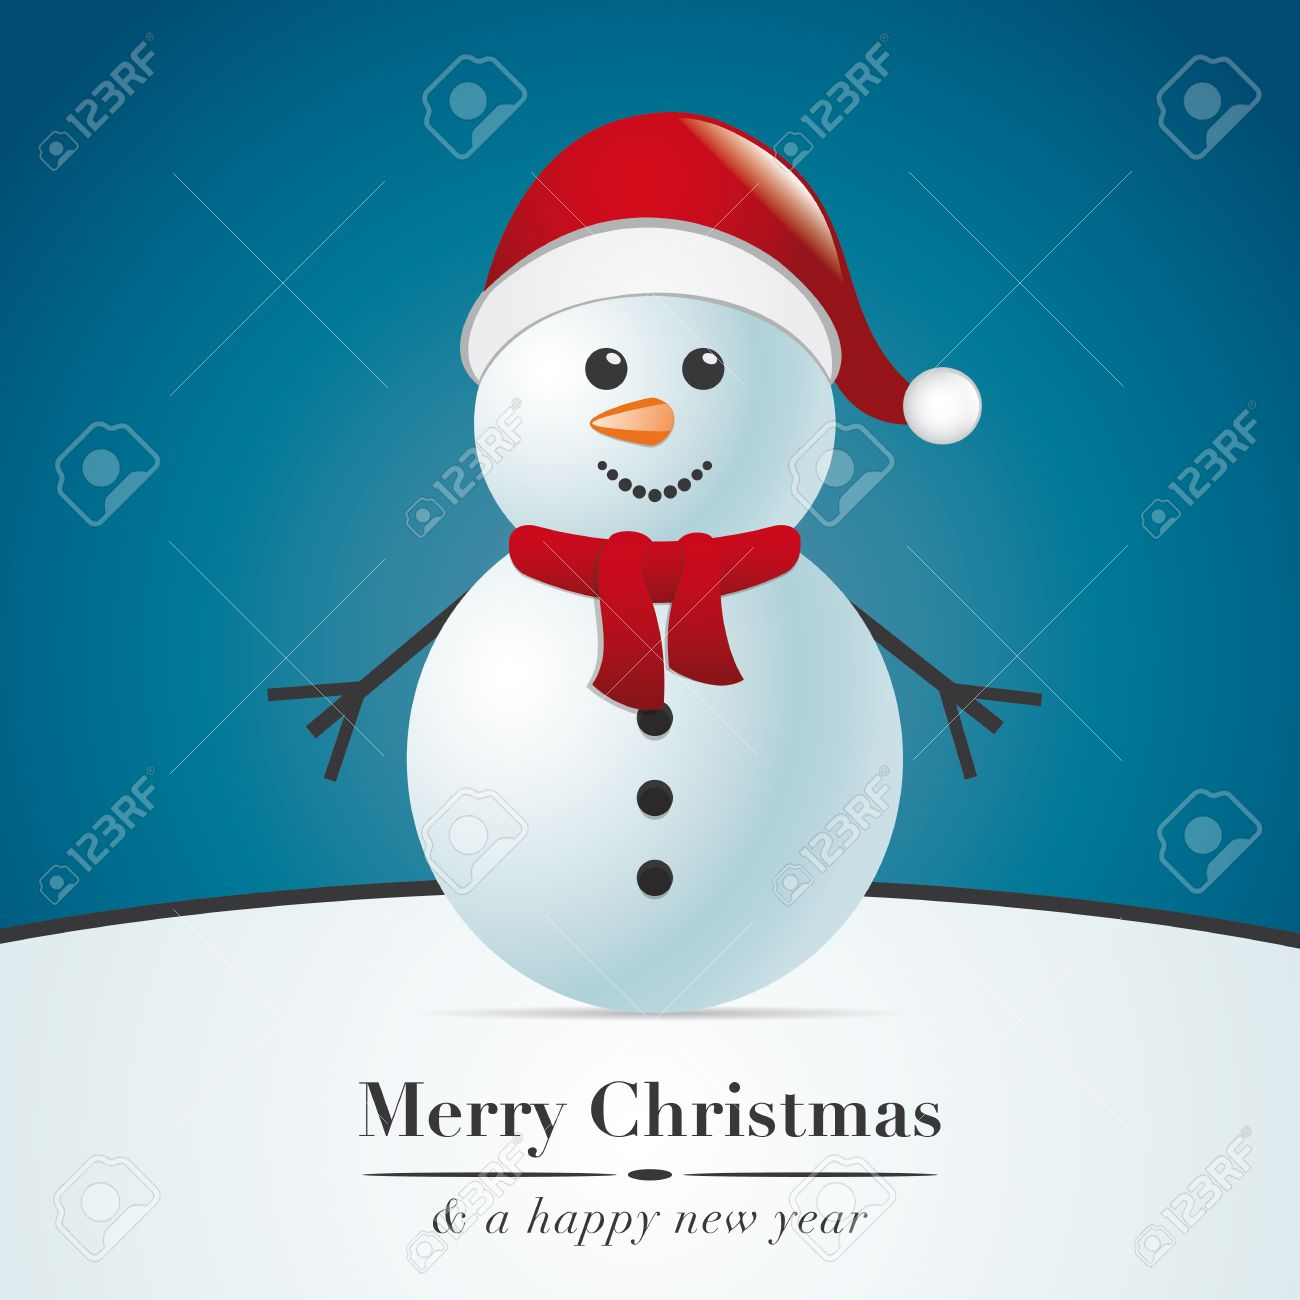 snowman with scarf and santa claus hat - 15995018